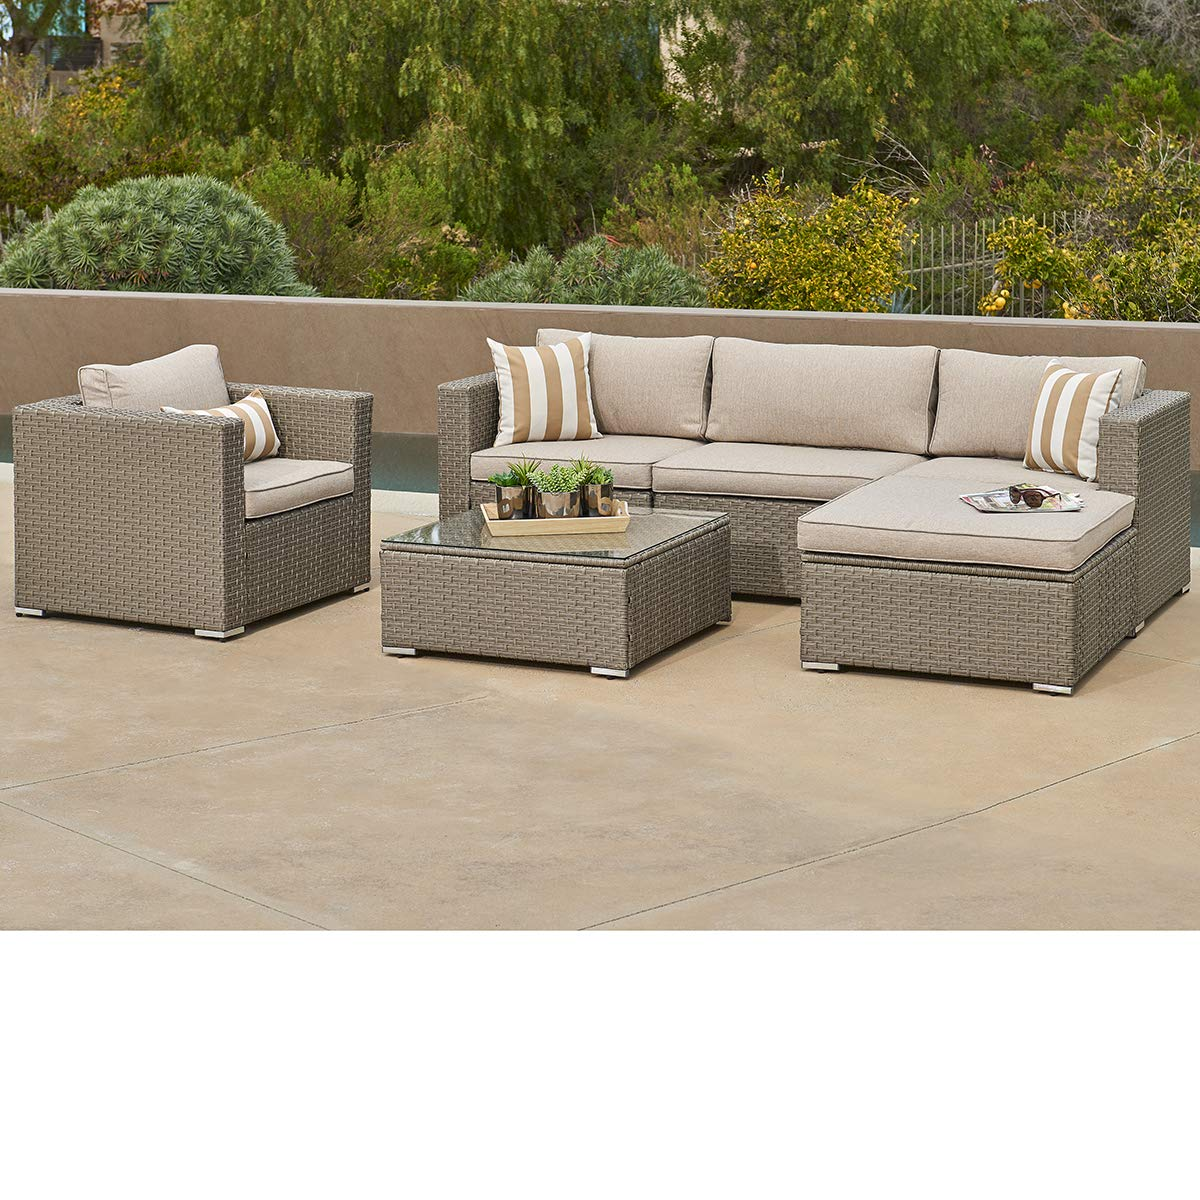 SUNCROWN Outdoor Furniture 6-Piece Sofa and Chair Set All-Weather Wicker with Grey Seat Cushions and Modern Glass Coffee Table, Patio, Backyard, Pool, Waterproof Cover